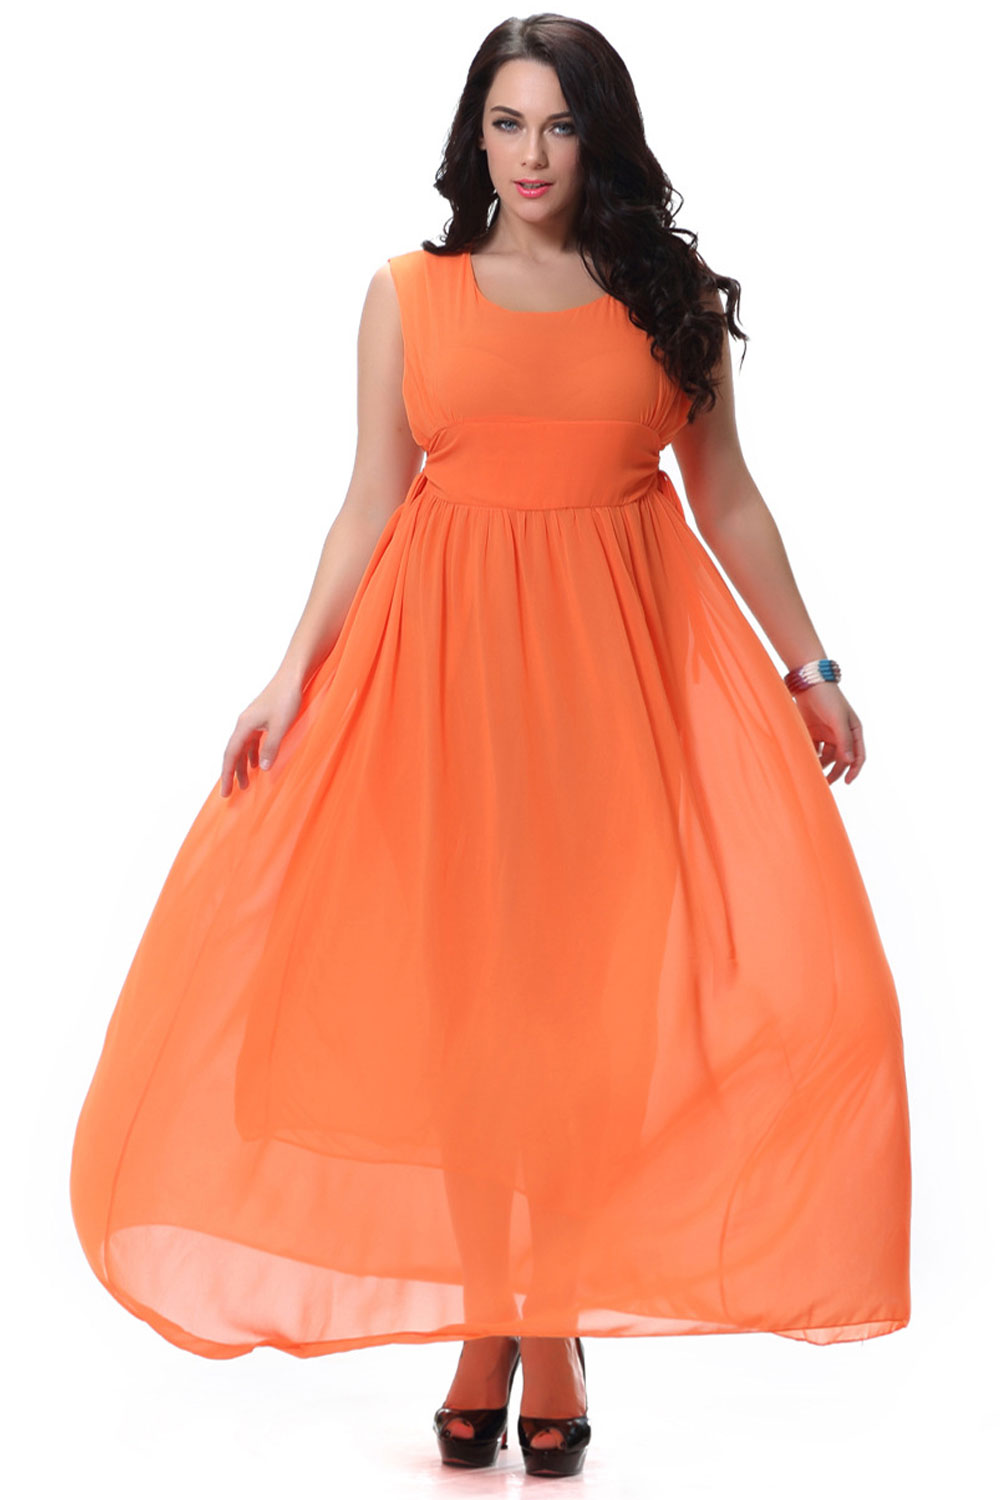 UNOMATCH WOMEN\'S ROUND NECK PLEATED LONG GOWN PROM NIGHT DRESS ORANGE